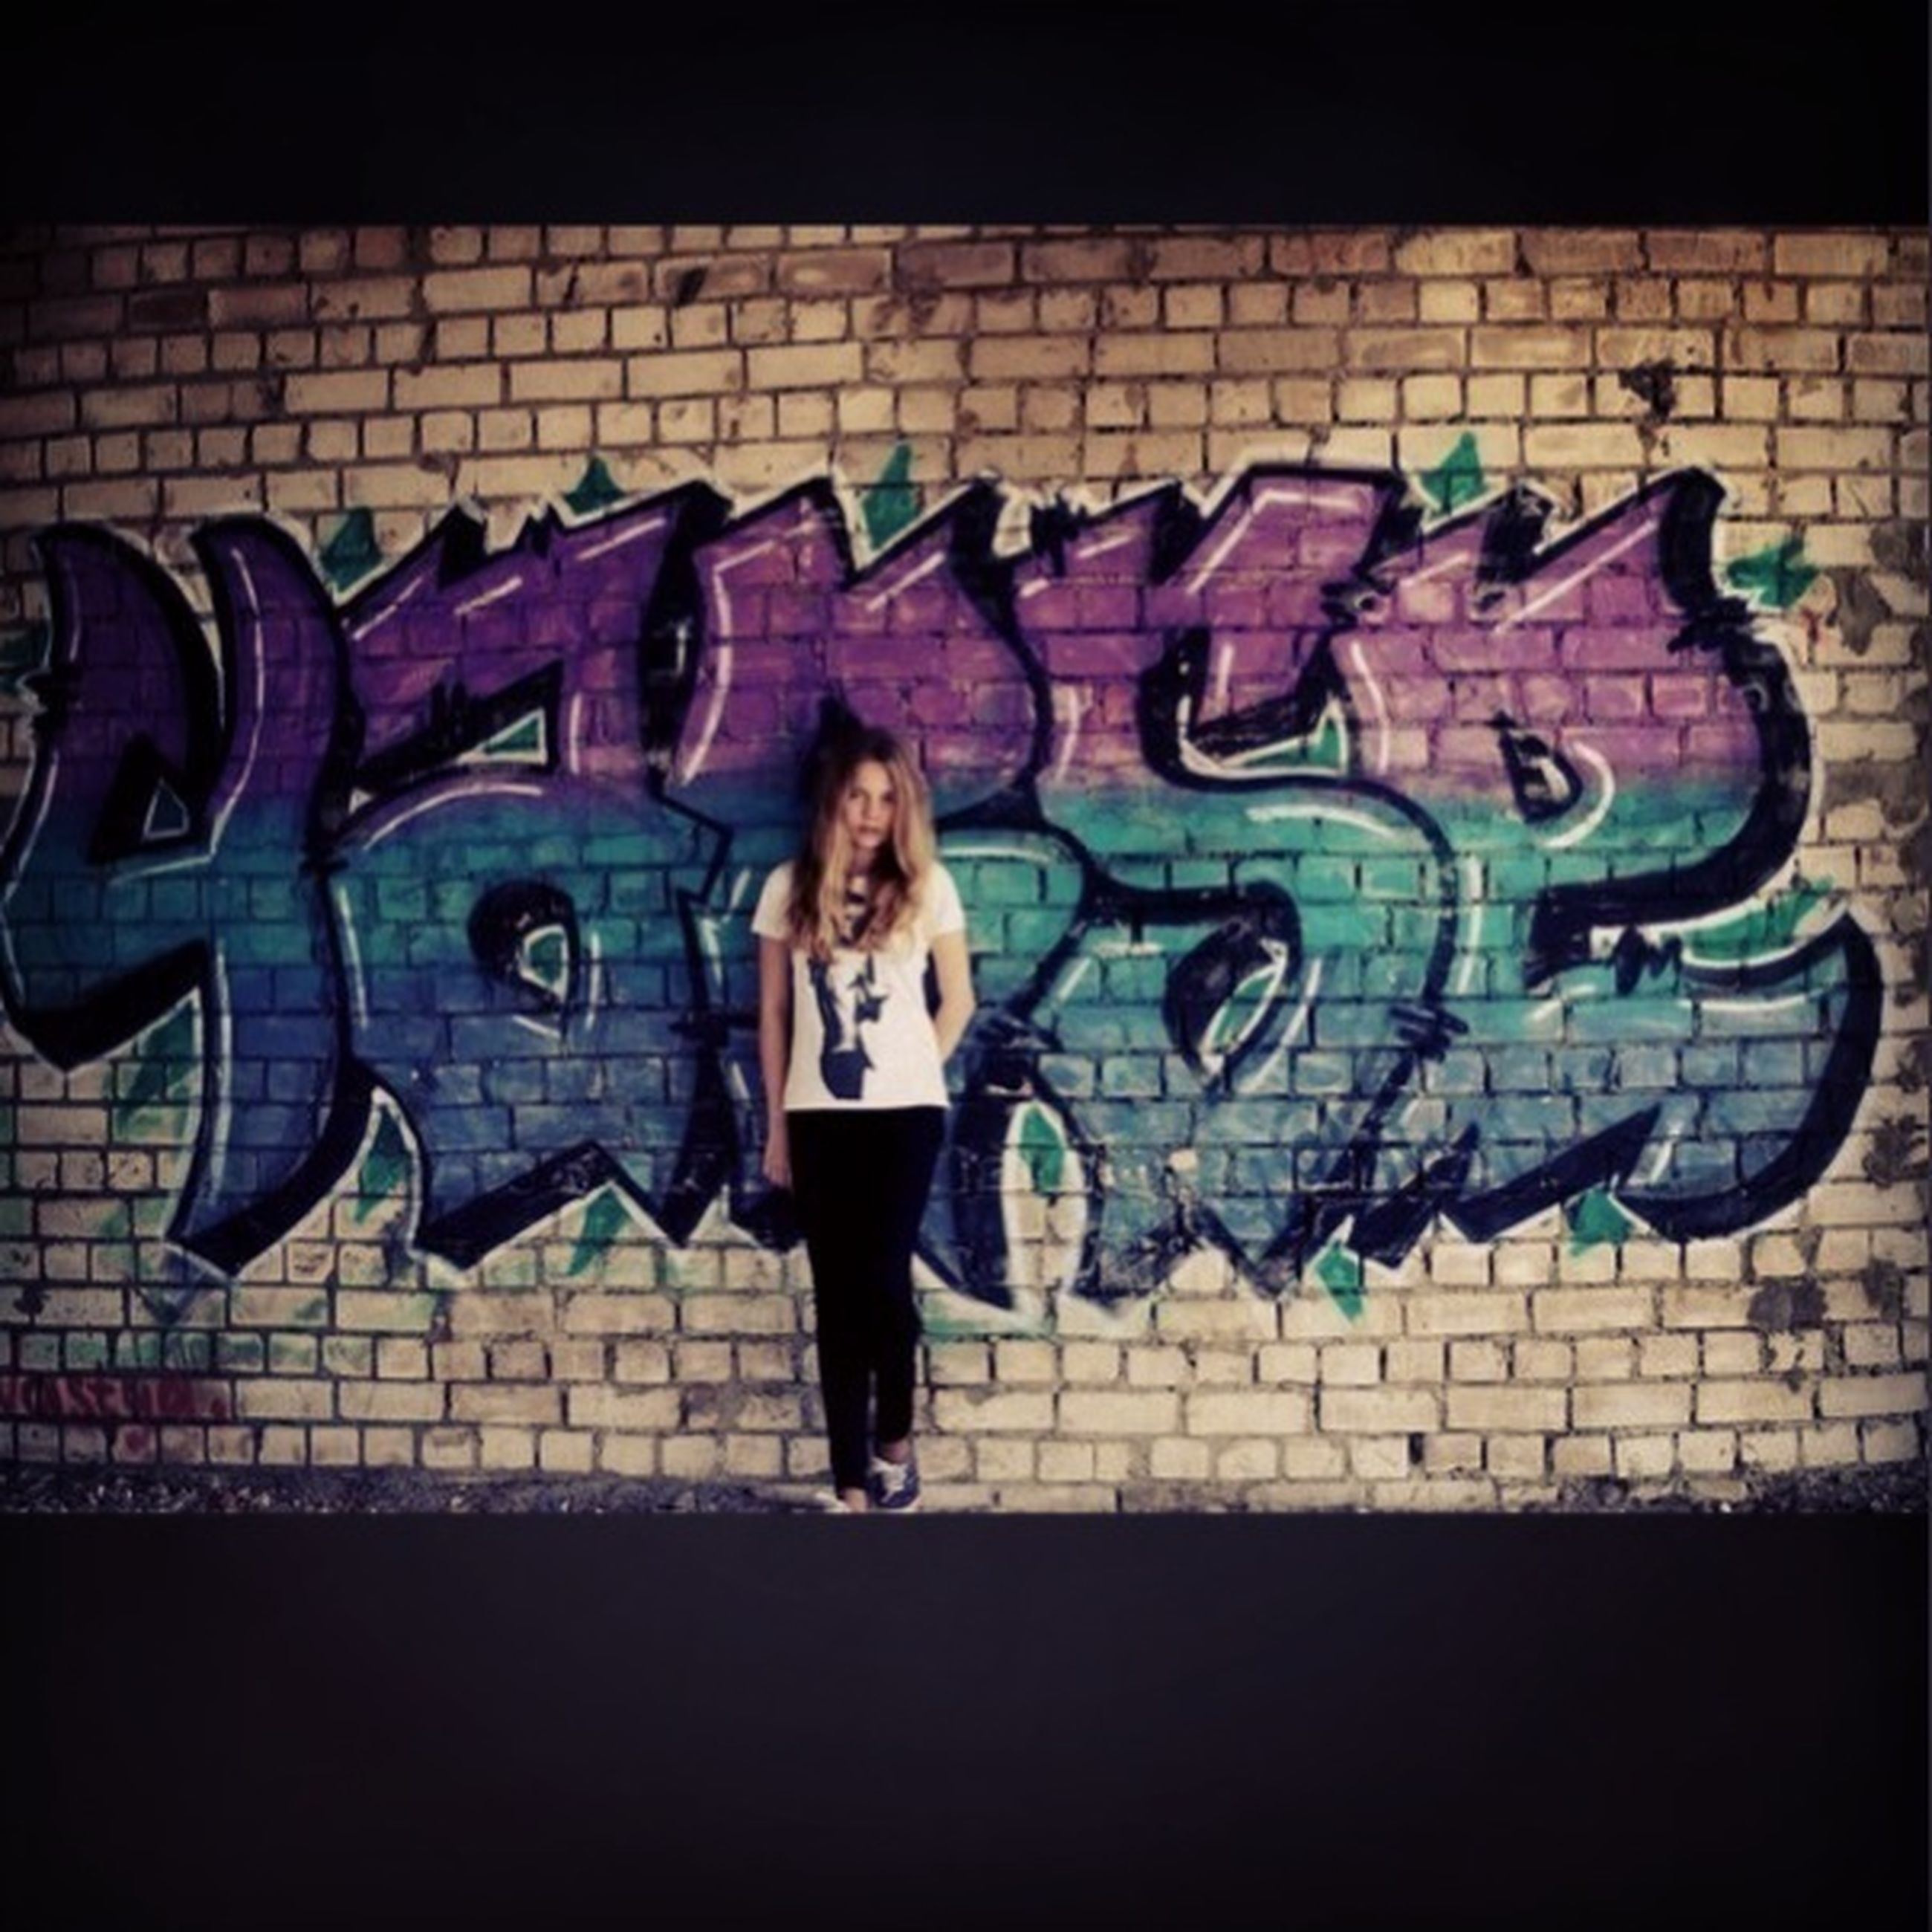 full length, standing, graffiti, wall - building feature, lifestyles, casual clothing, art, leisure activity, brick wall, portrait, front view, creativity, built structure, art and craft, looking at camera, architecture, outdoors, person